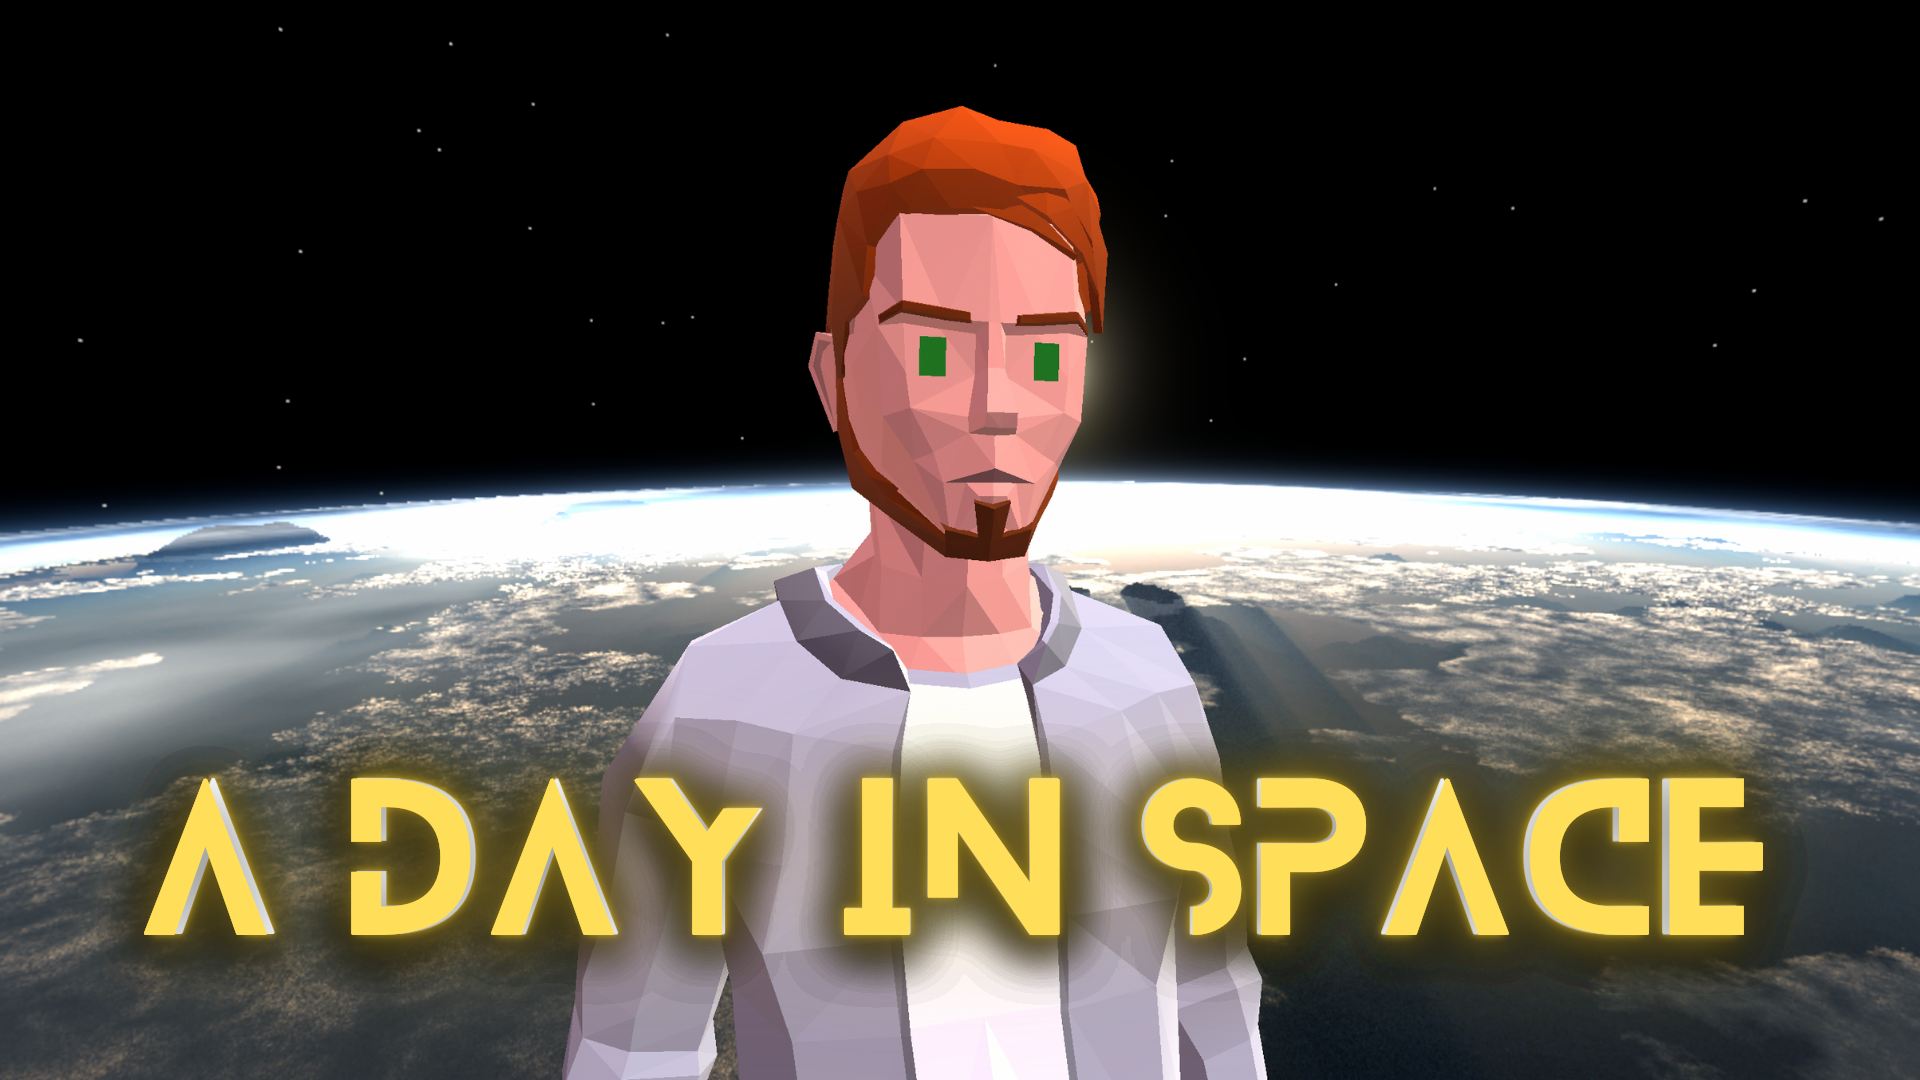 A Day In Space